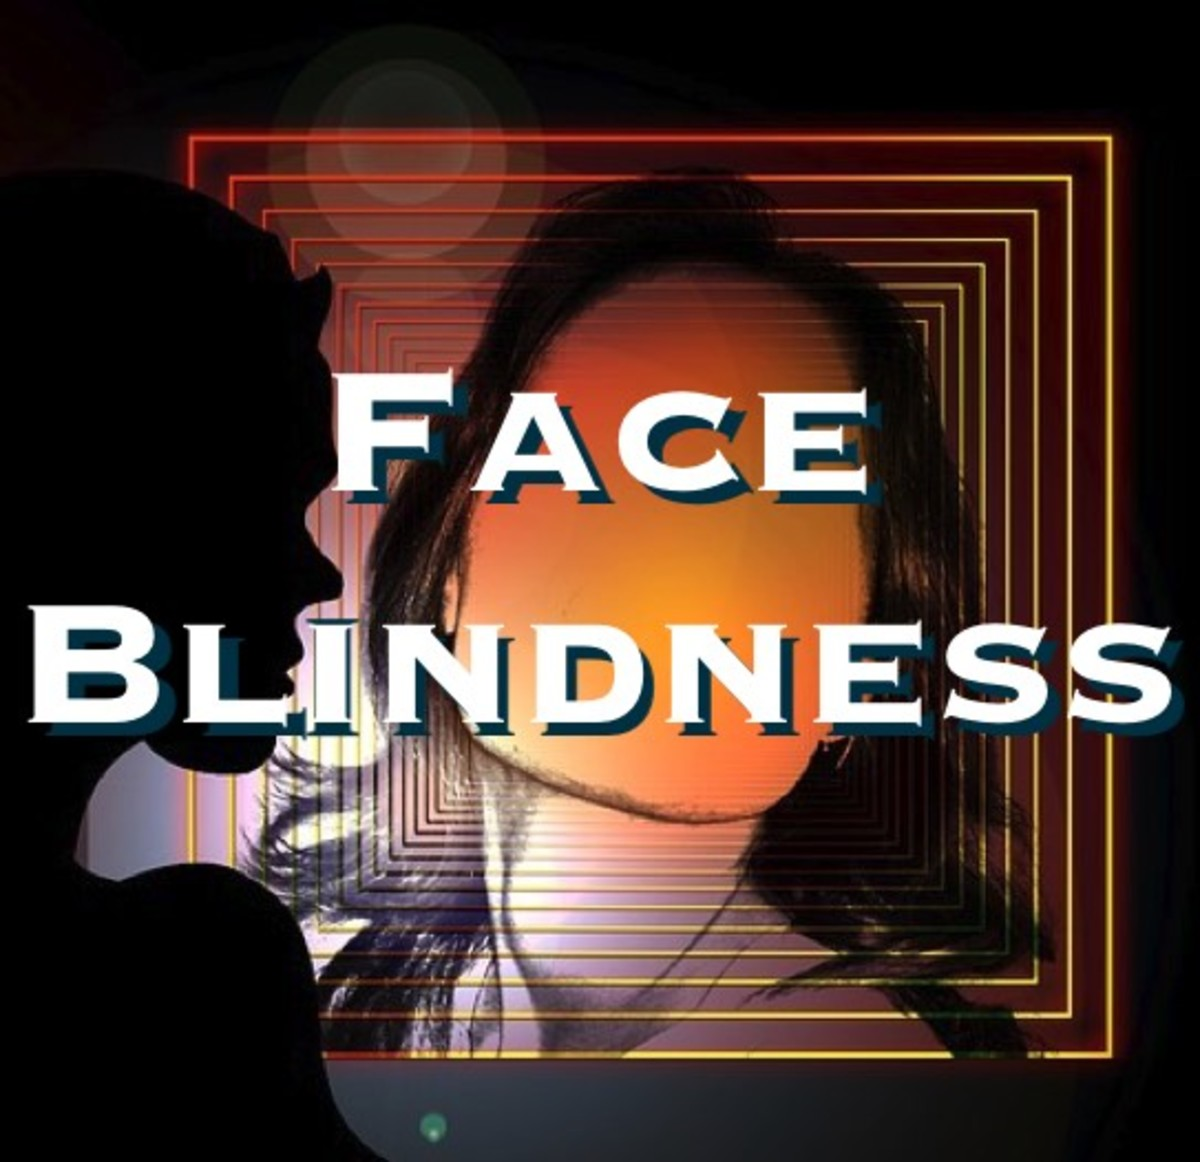 You Might Have Face Blindness if You Can't Recognize People: Prosopagnosia